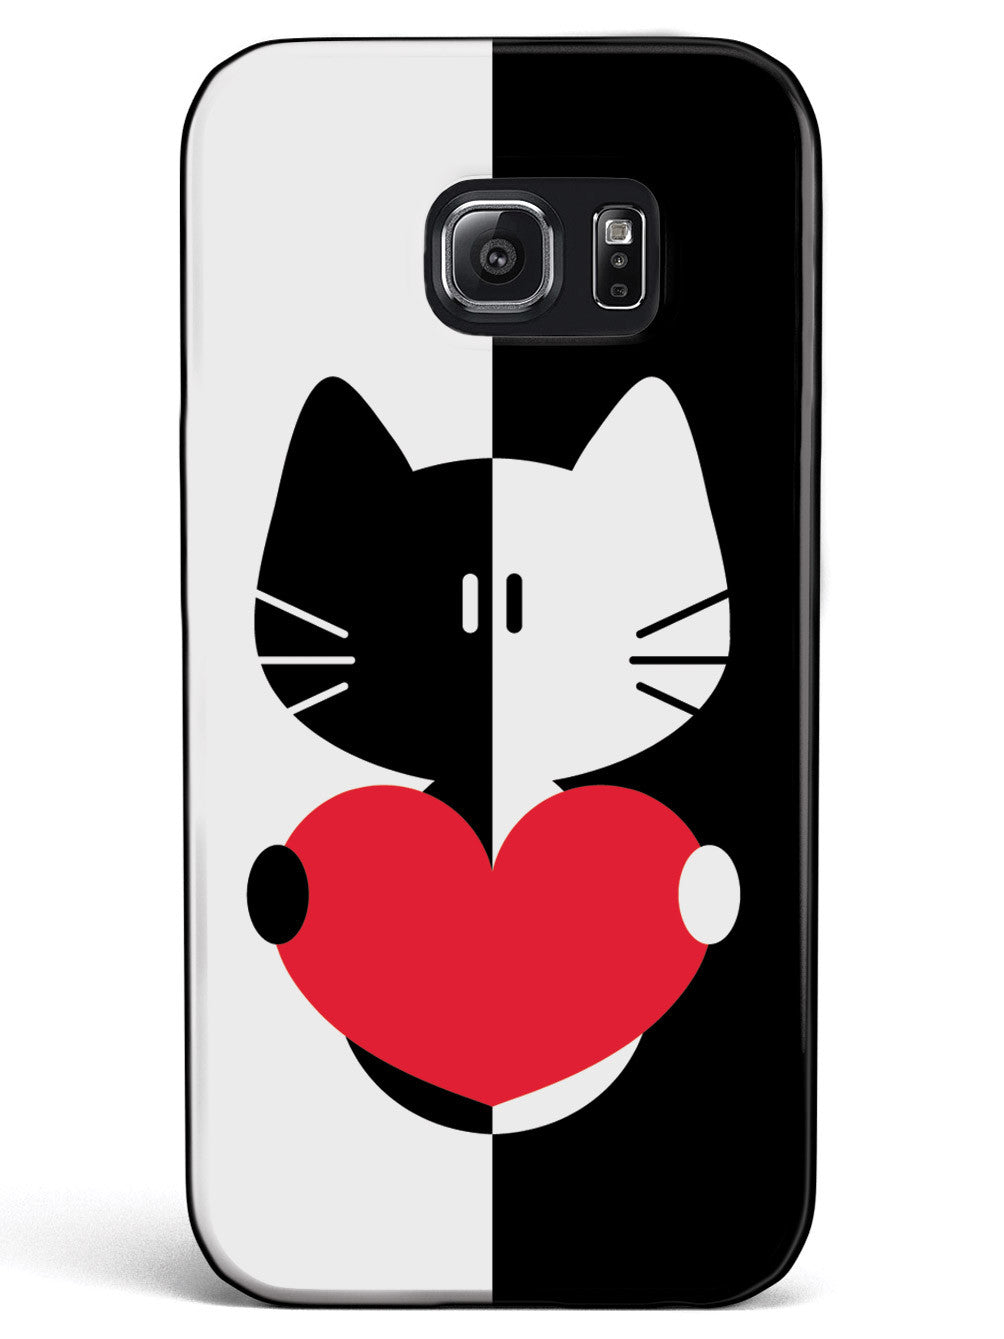 Black & White Cartoon Cat Heart - Black Case